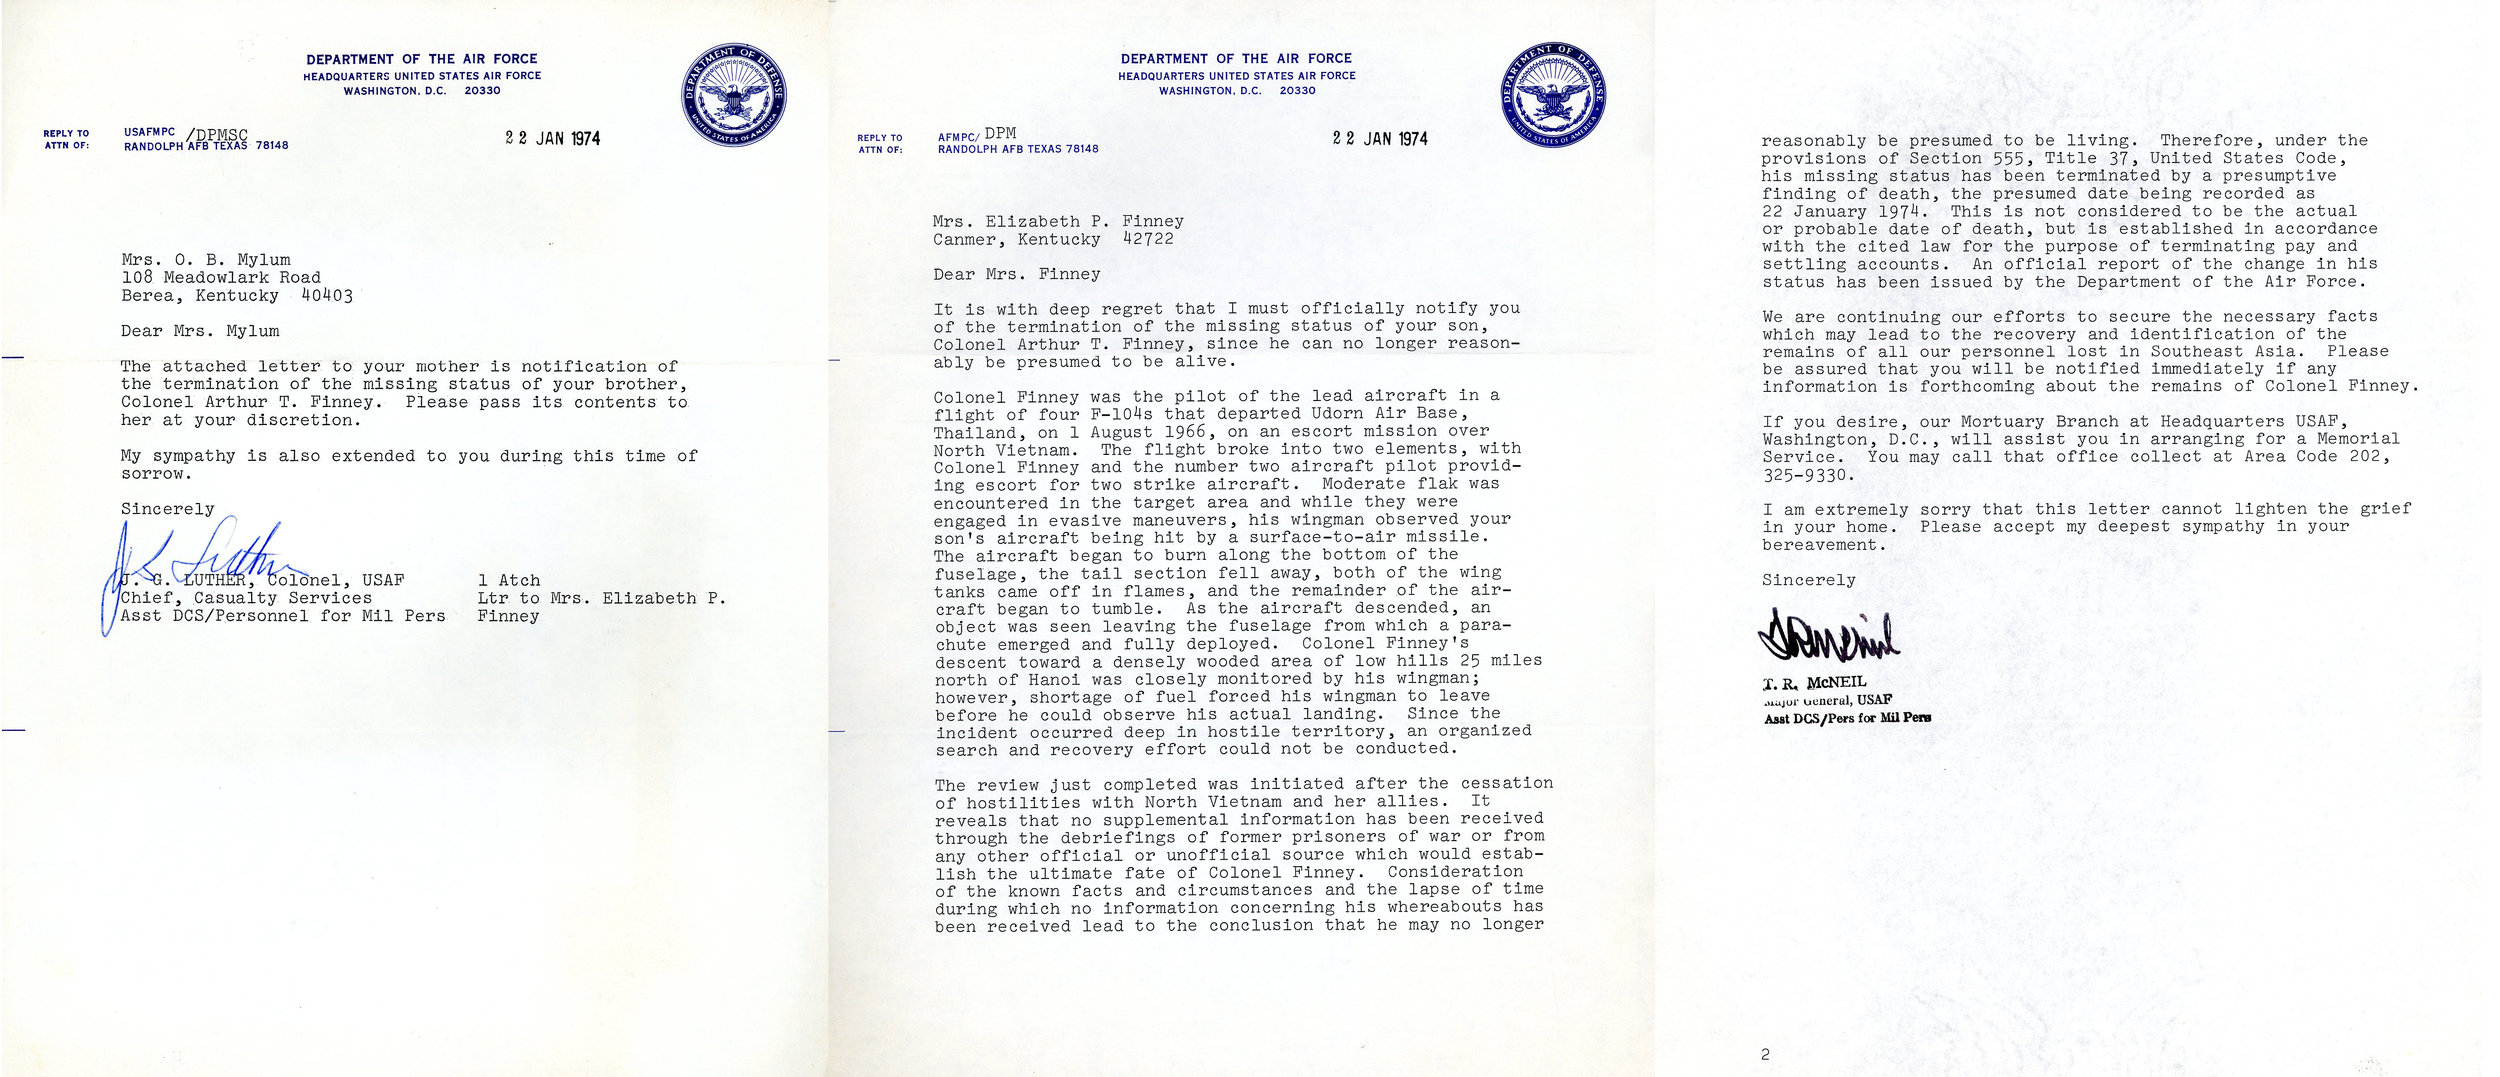 January 22, 1974 - Notice of status changed to killed in action from missing in action.